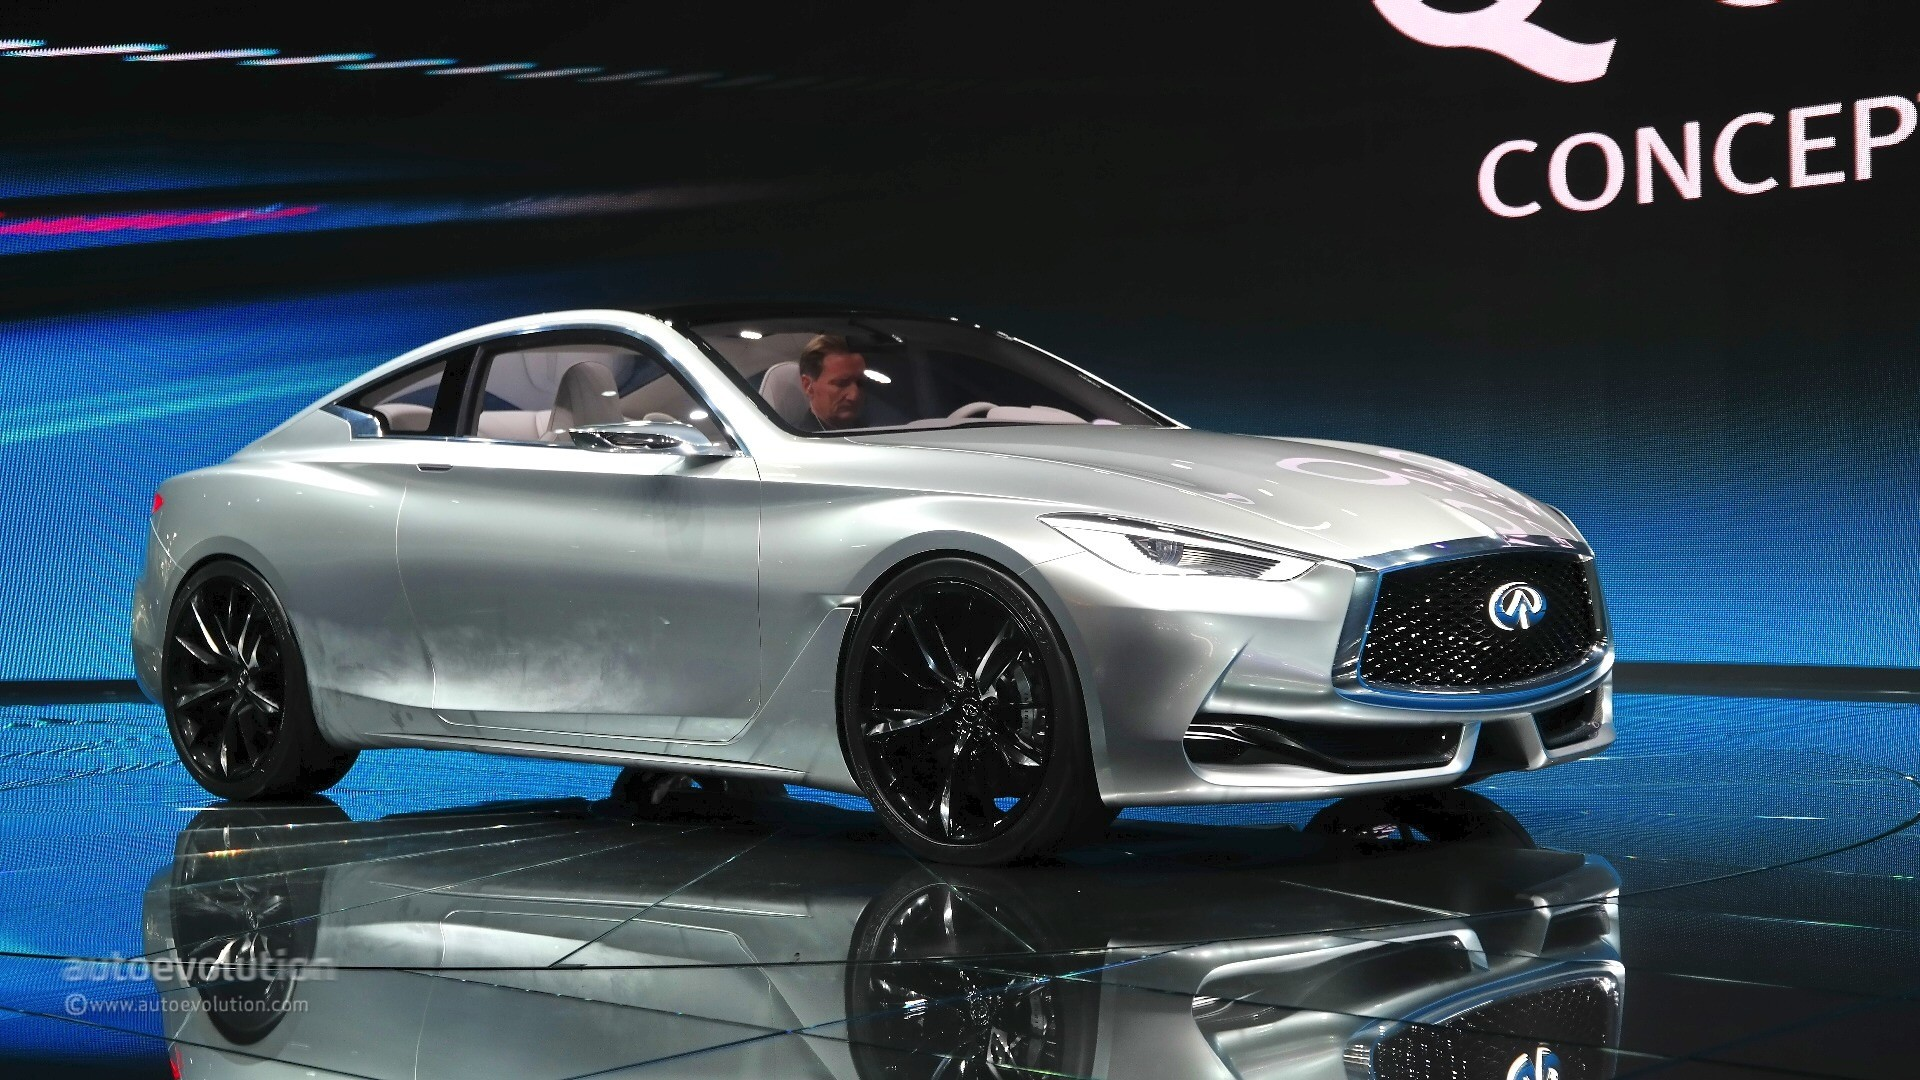 New infiniti q60 to get 3 0 and 4 7 liter mercedes engines report says autoevolution